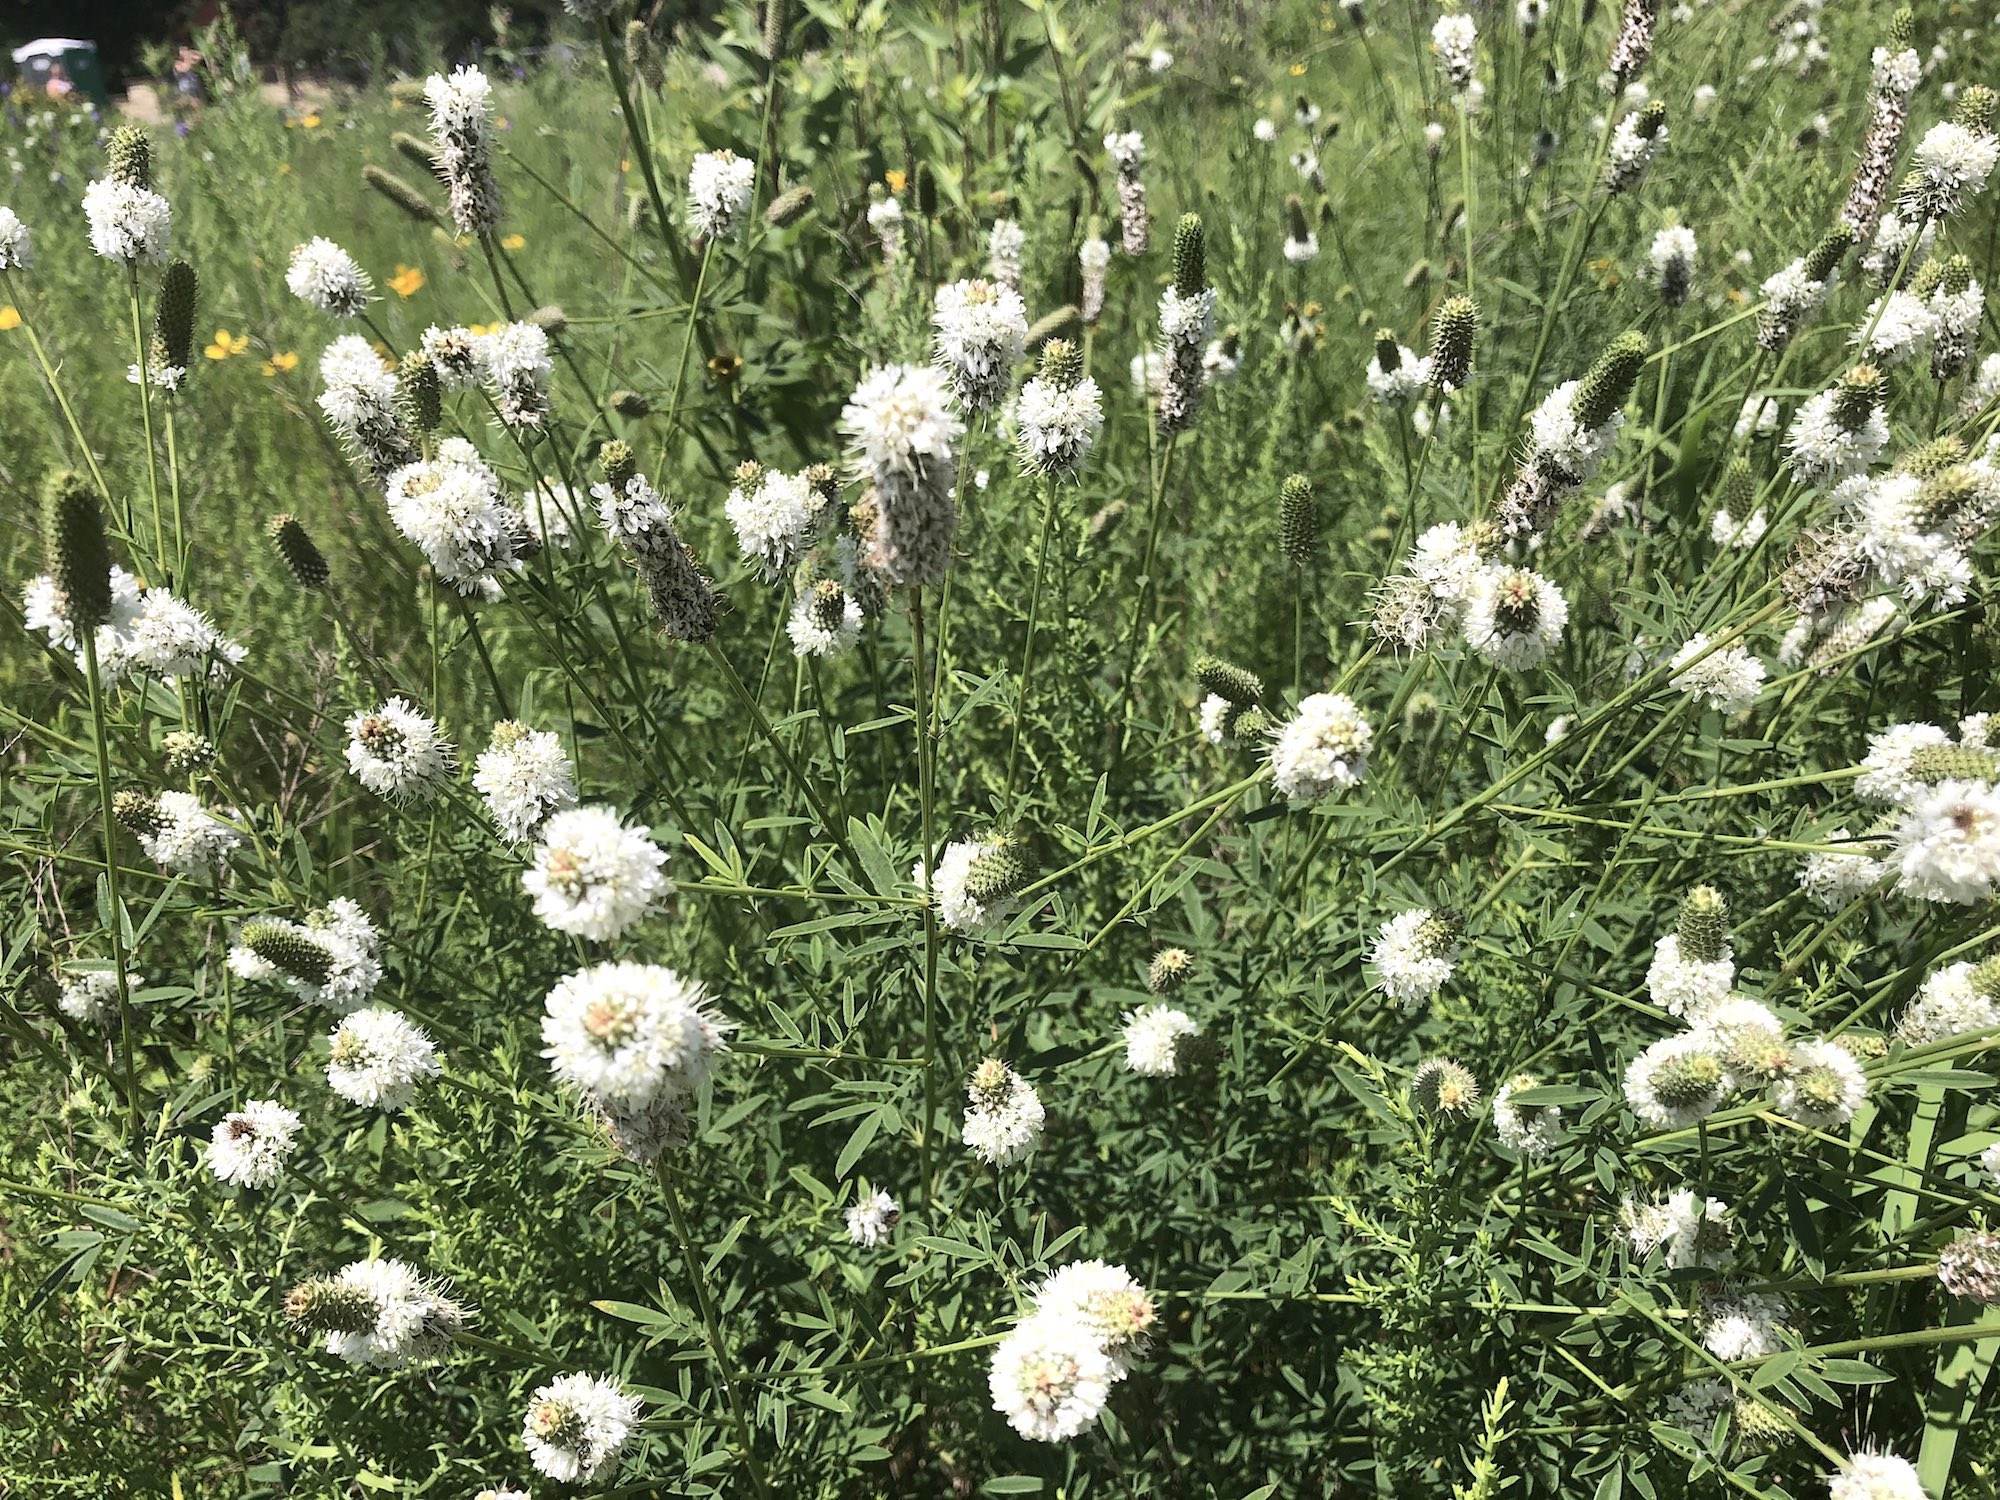 White Prairie Clover next to the UW Arboretum Visitors Center parking lot on July 10, 2020.